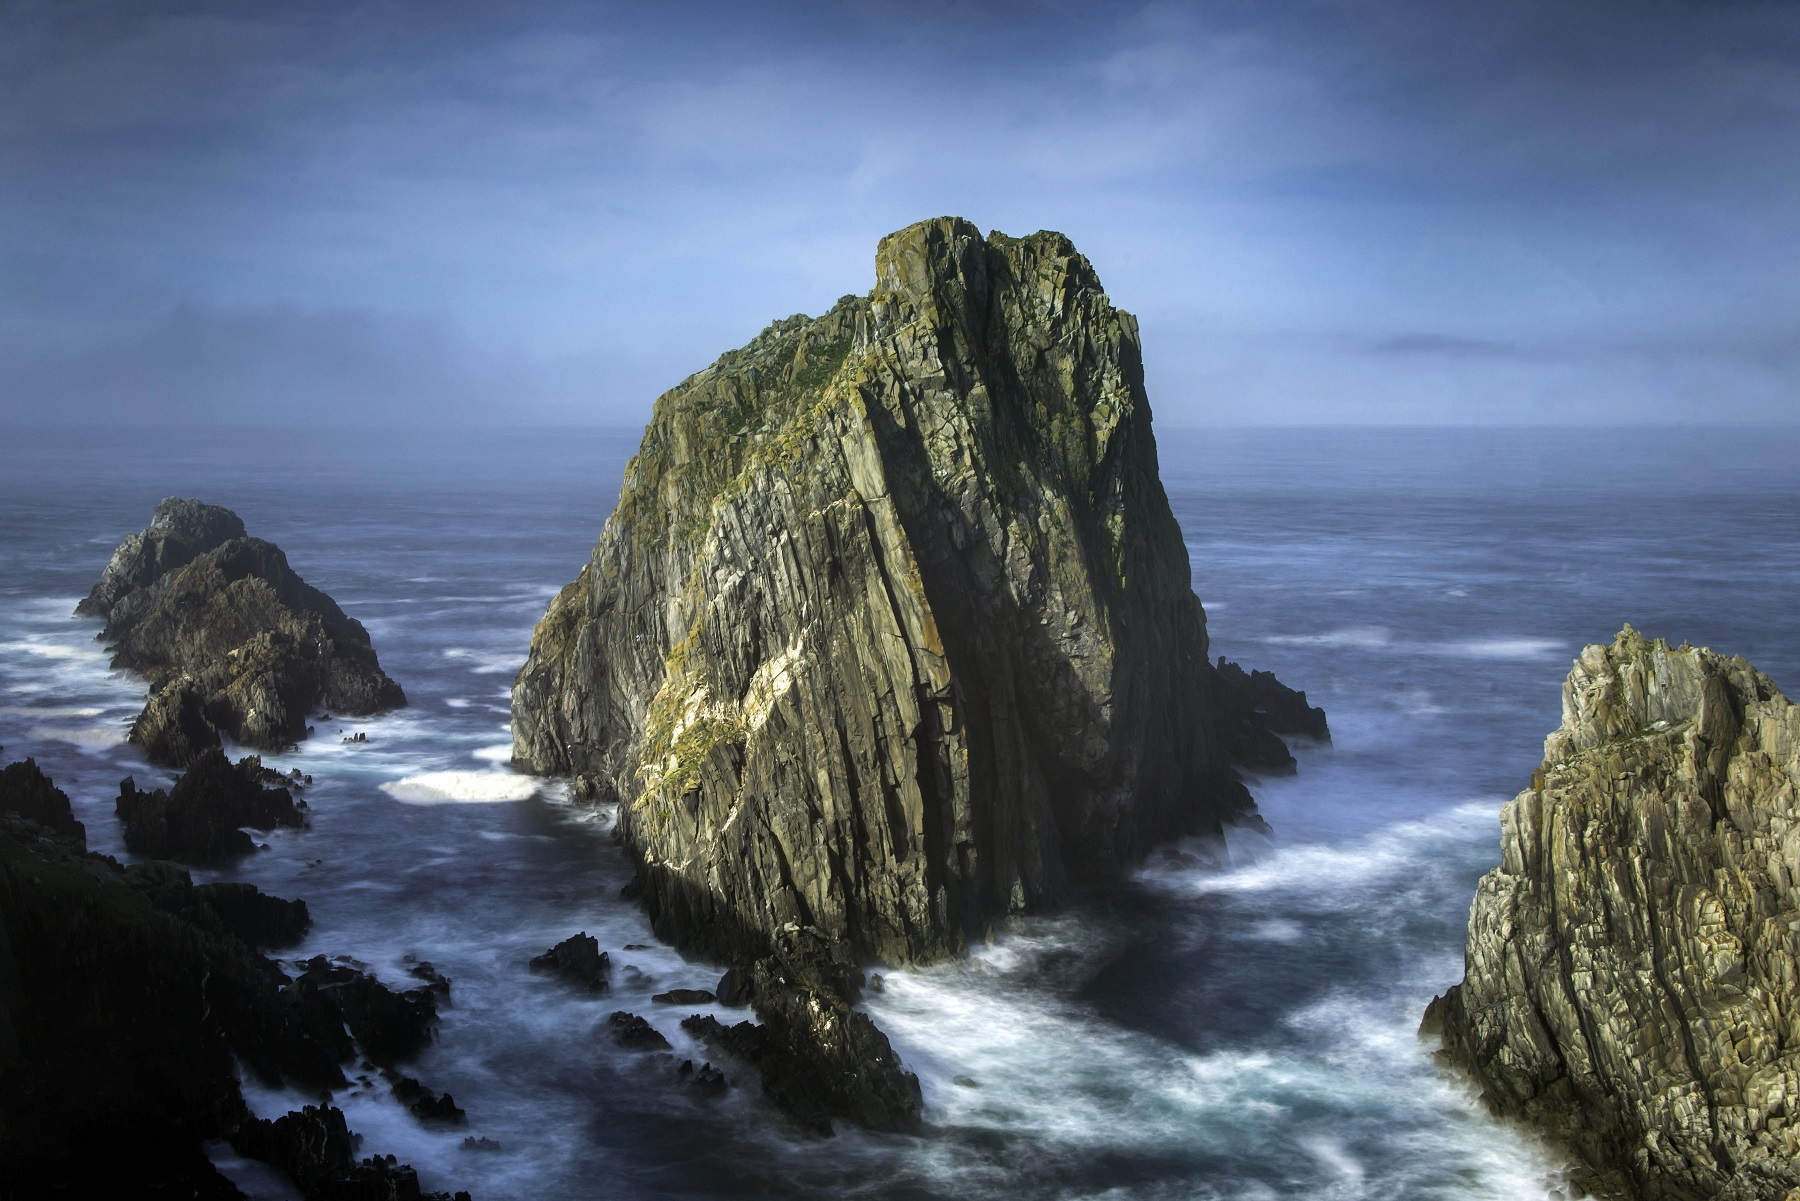 May the force be with you as you explore Ireland's Wild Atlantic Way